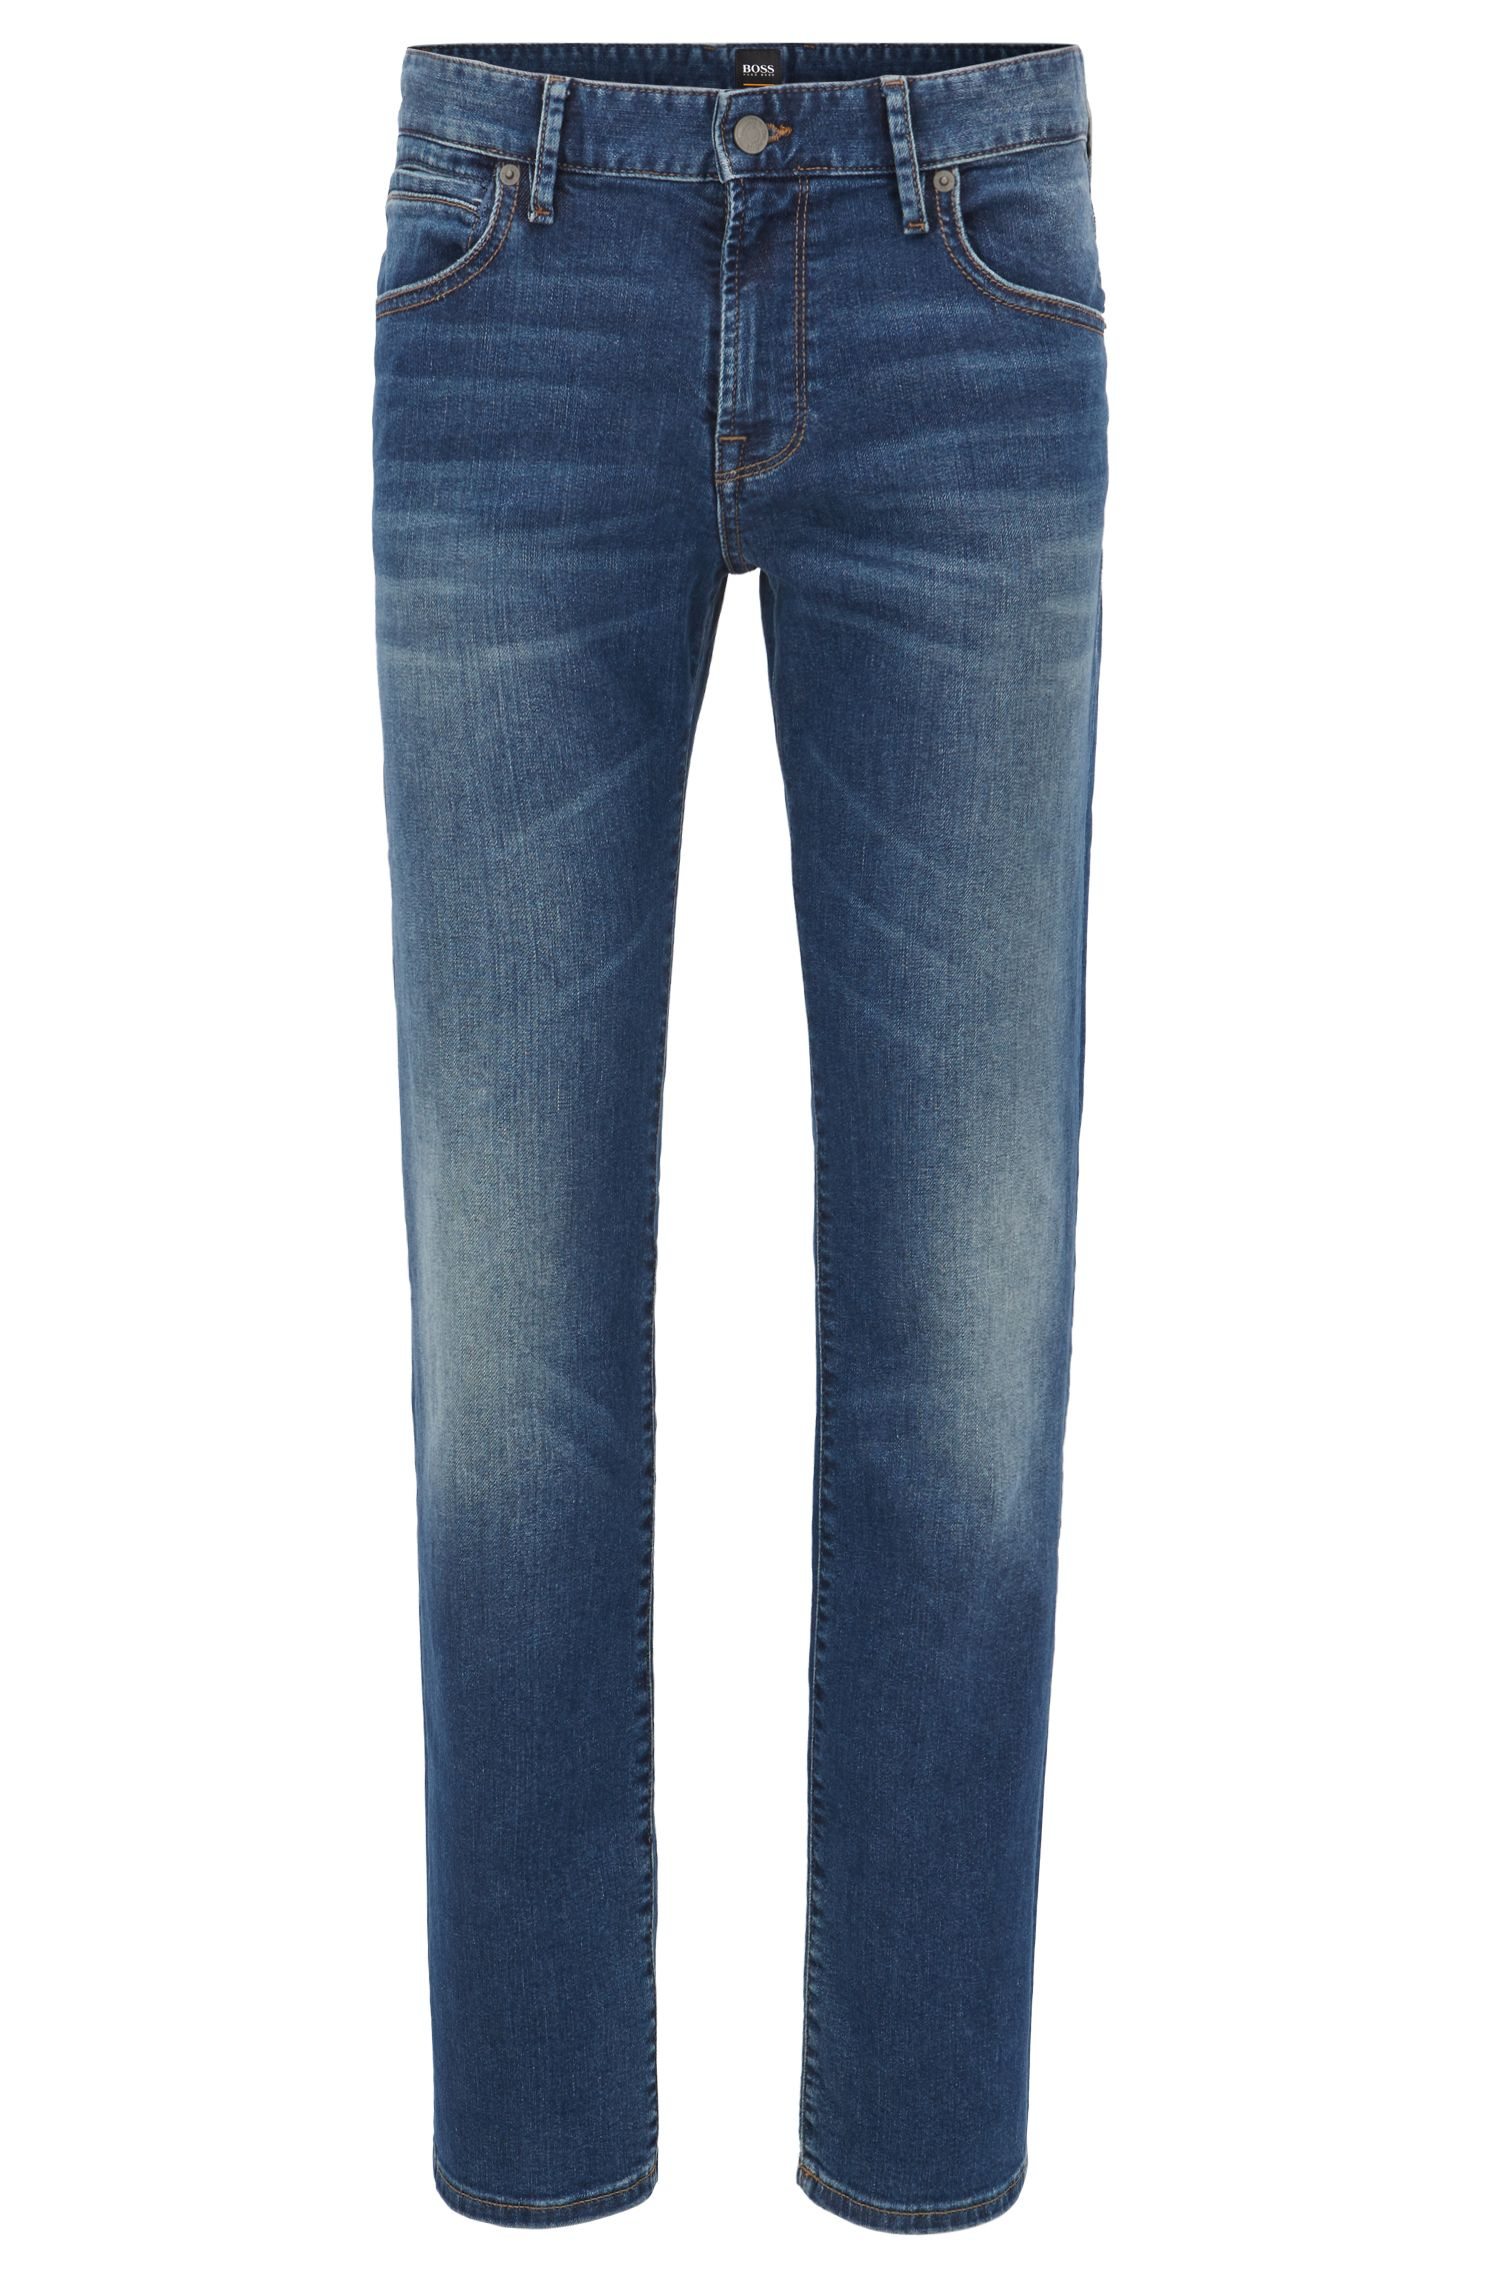 Regular-fit jeans in distressed indigo denim